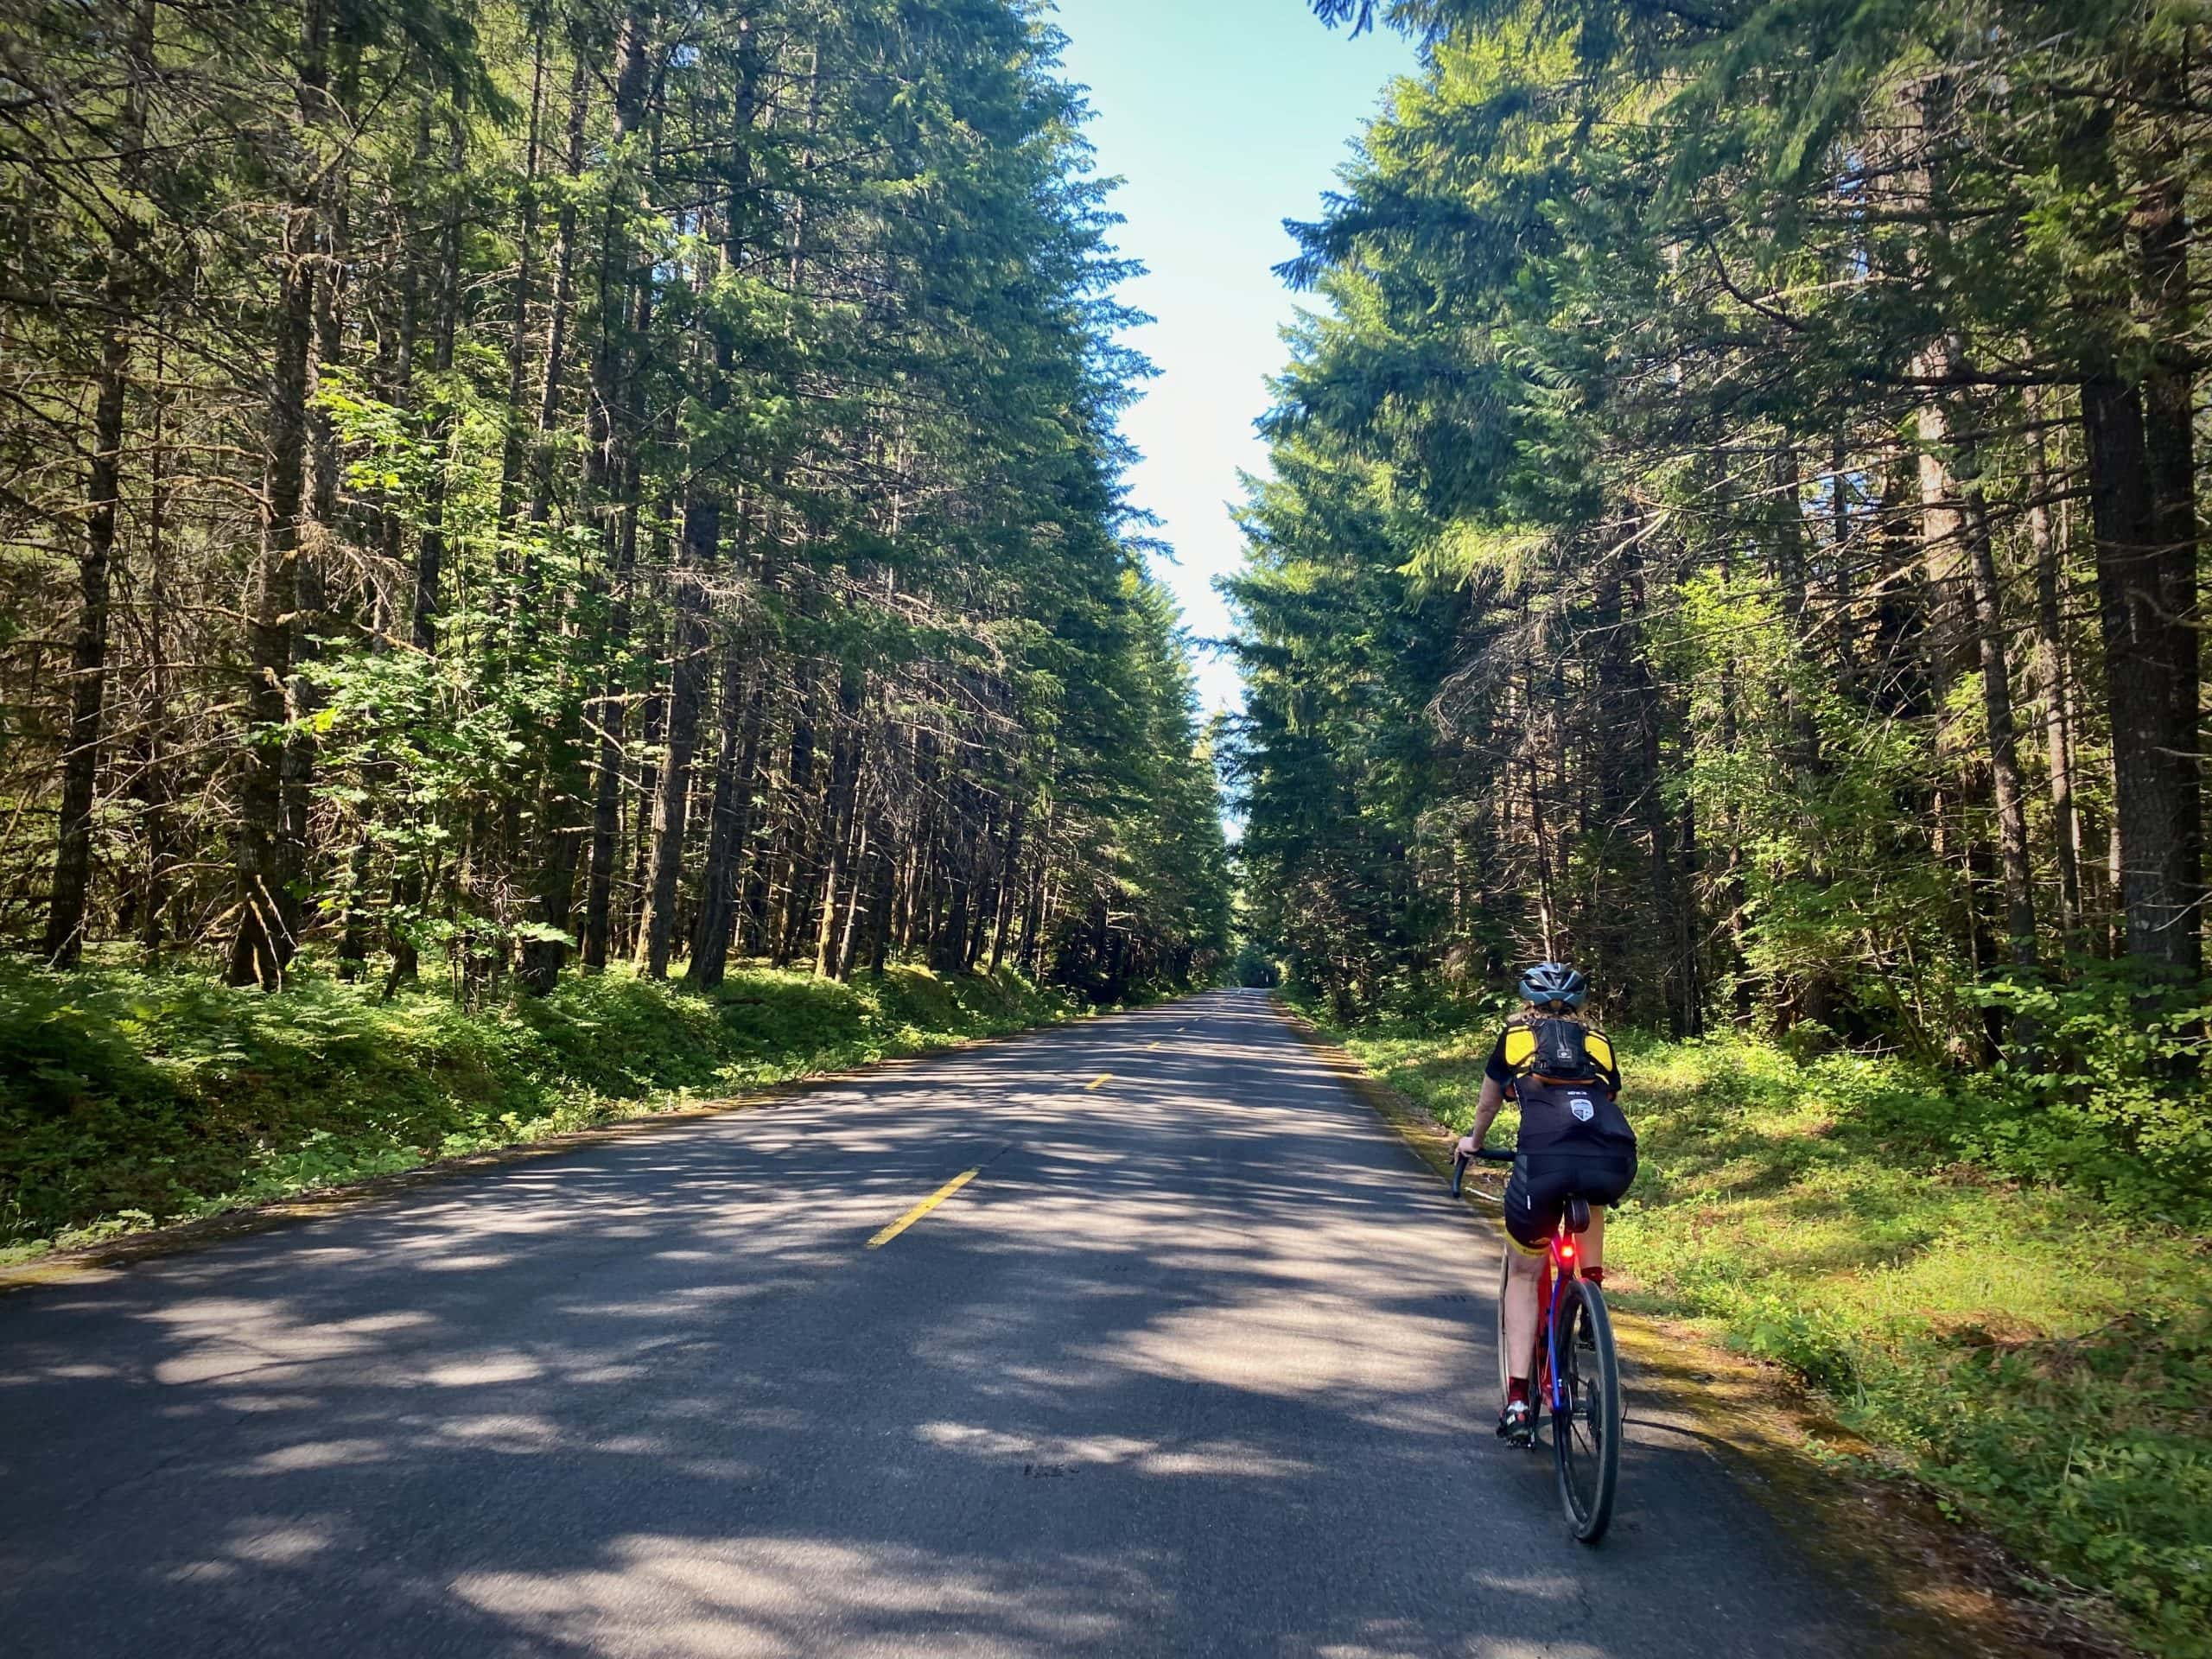 Cyclist on the double lane paved road, NF 21, in the Willamette National Forest.